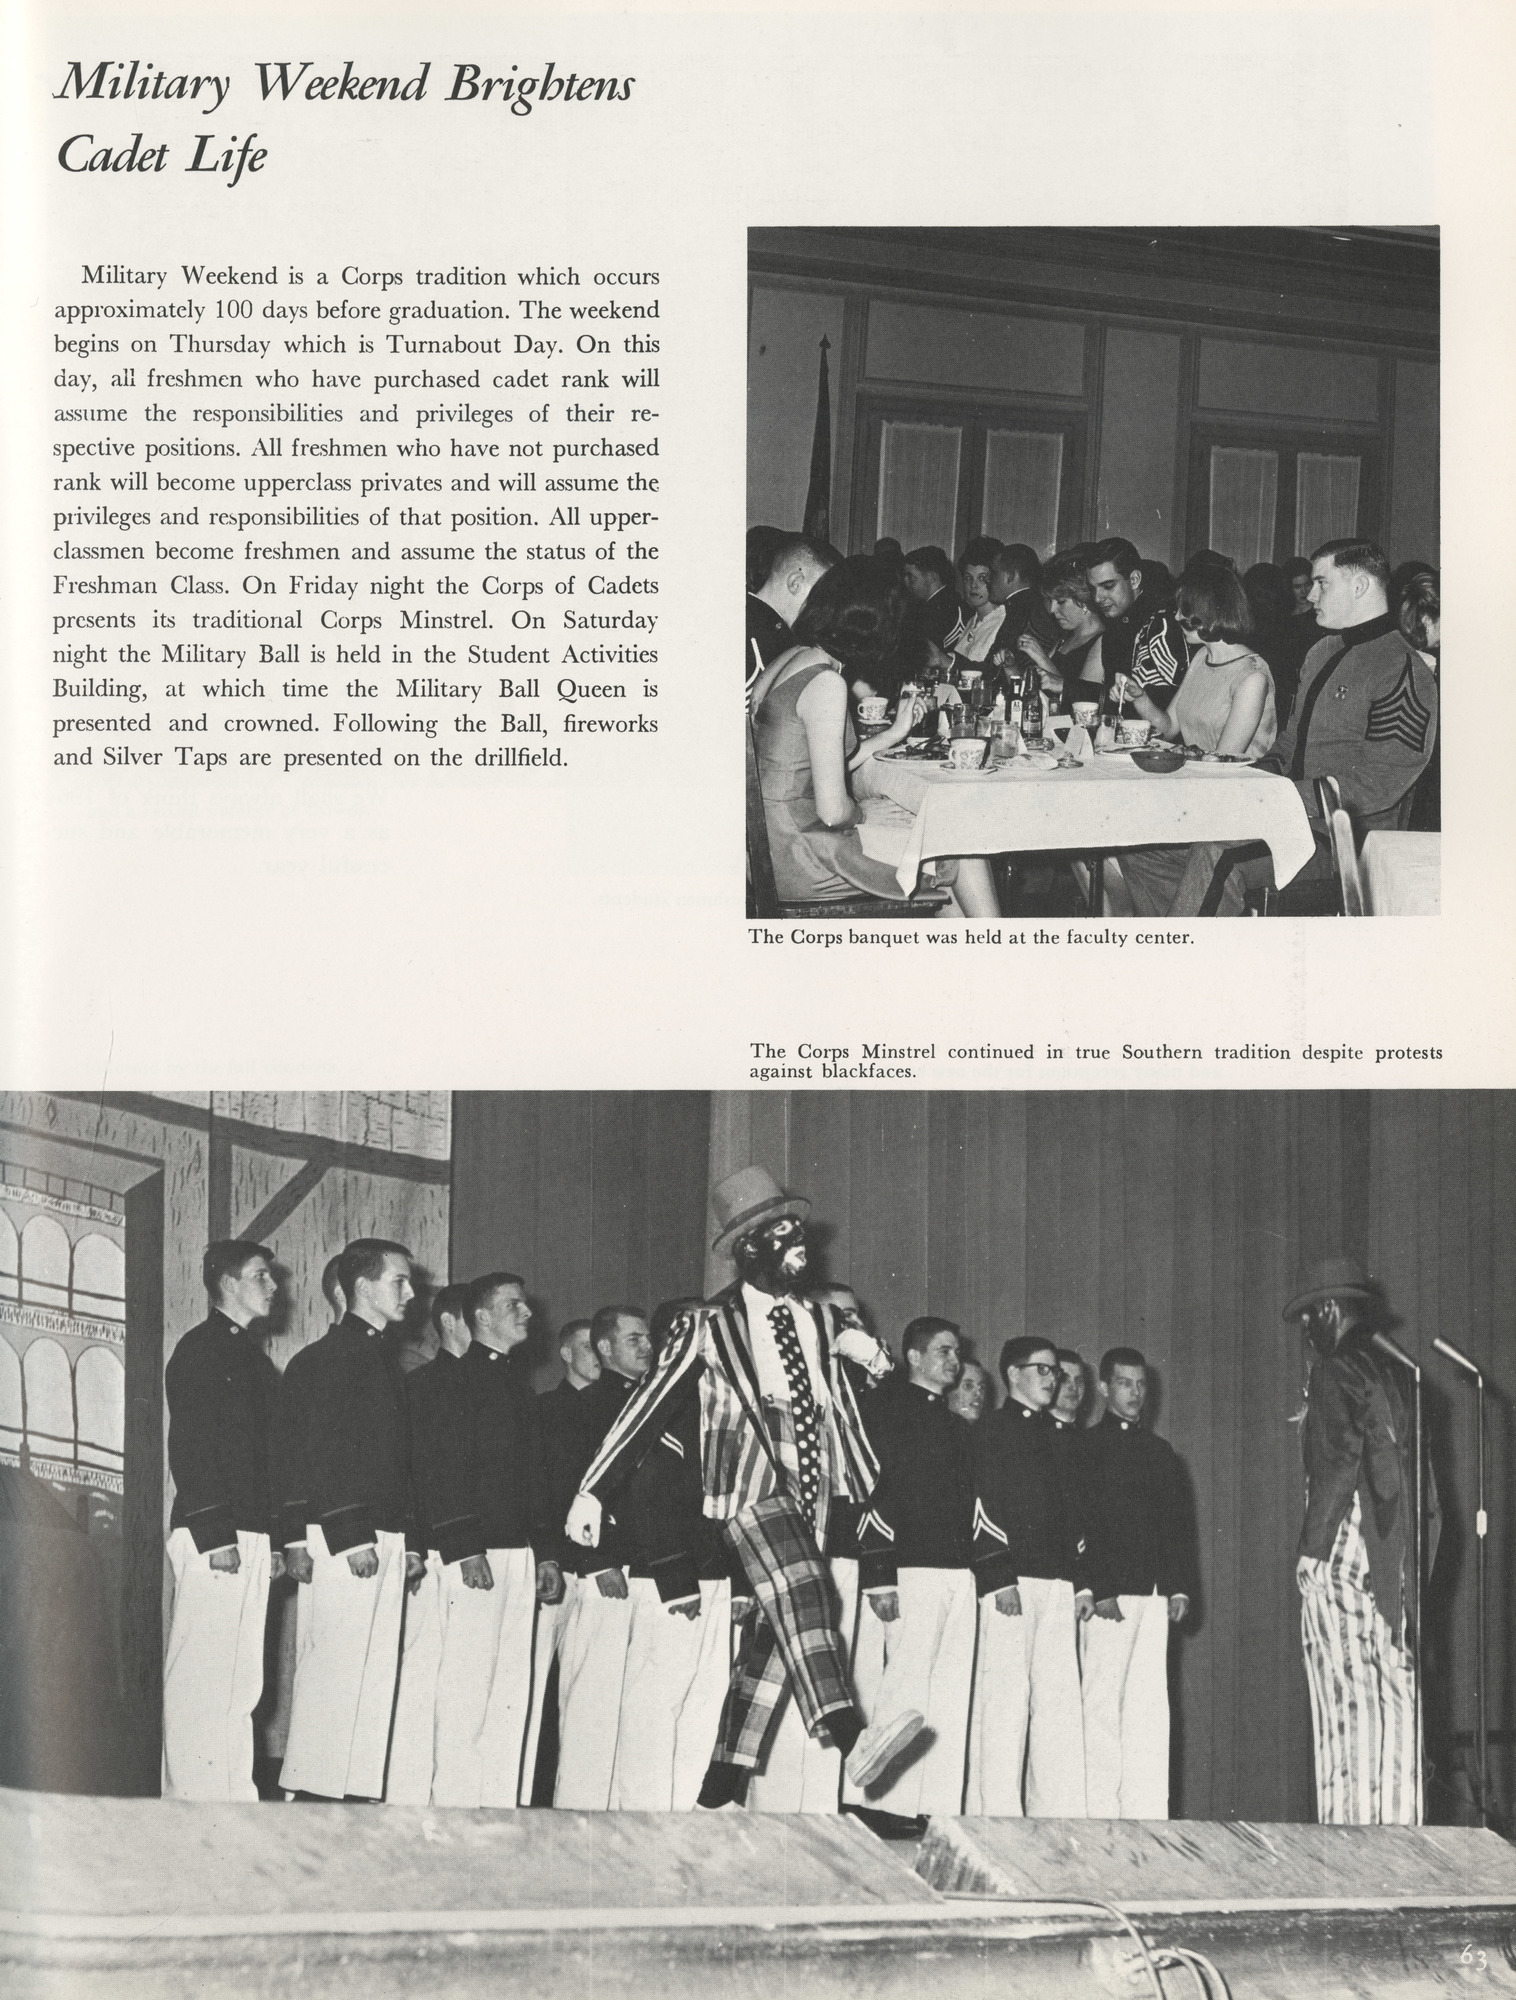 http://spec.lib.vt.edu/pickup/Omeka_upload/Bugle1965_pg63_BlackFace.jpg